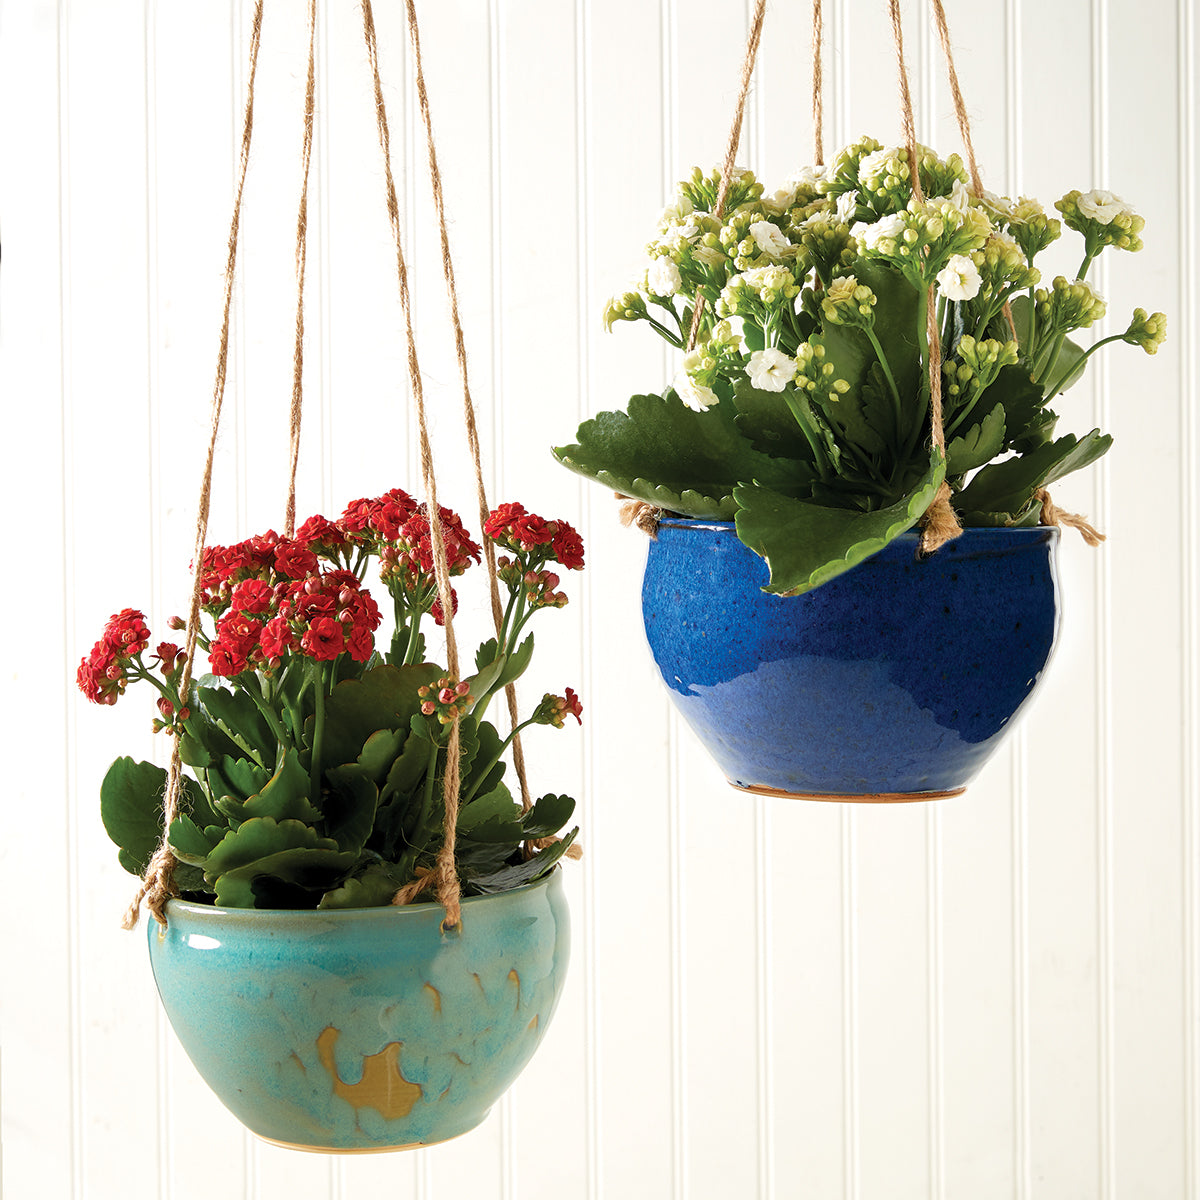 Pottery Hanging Planters